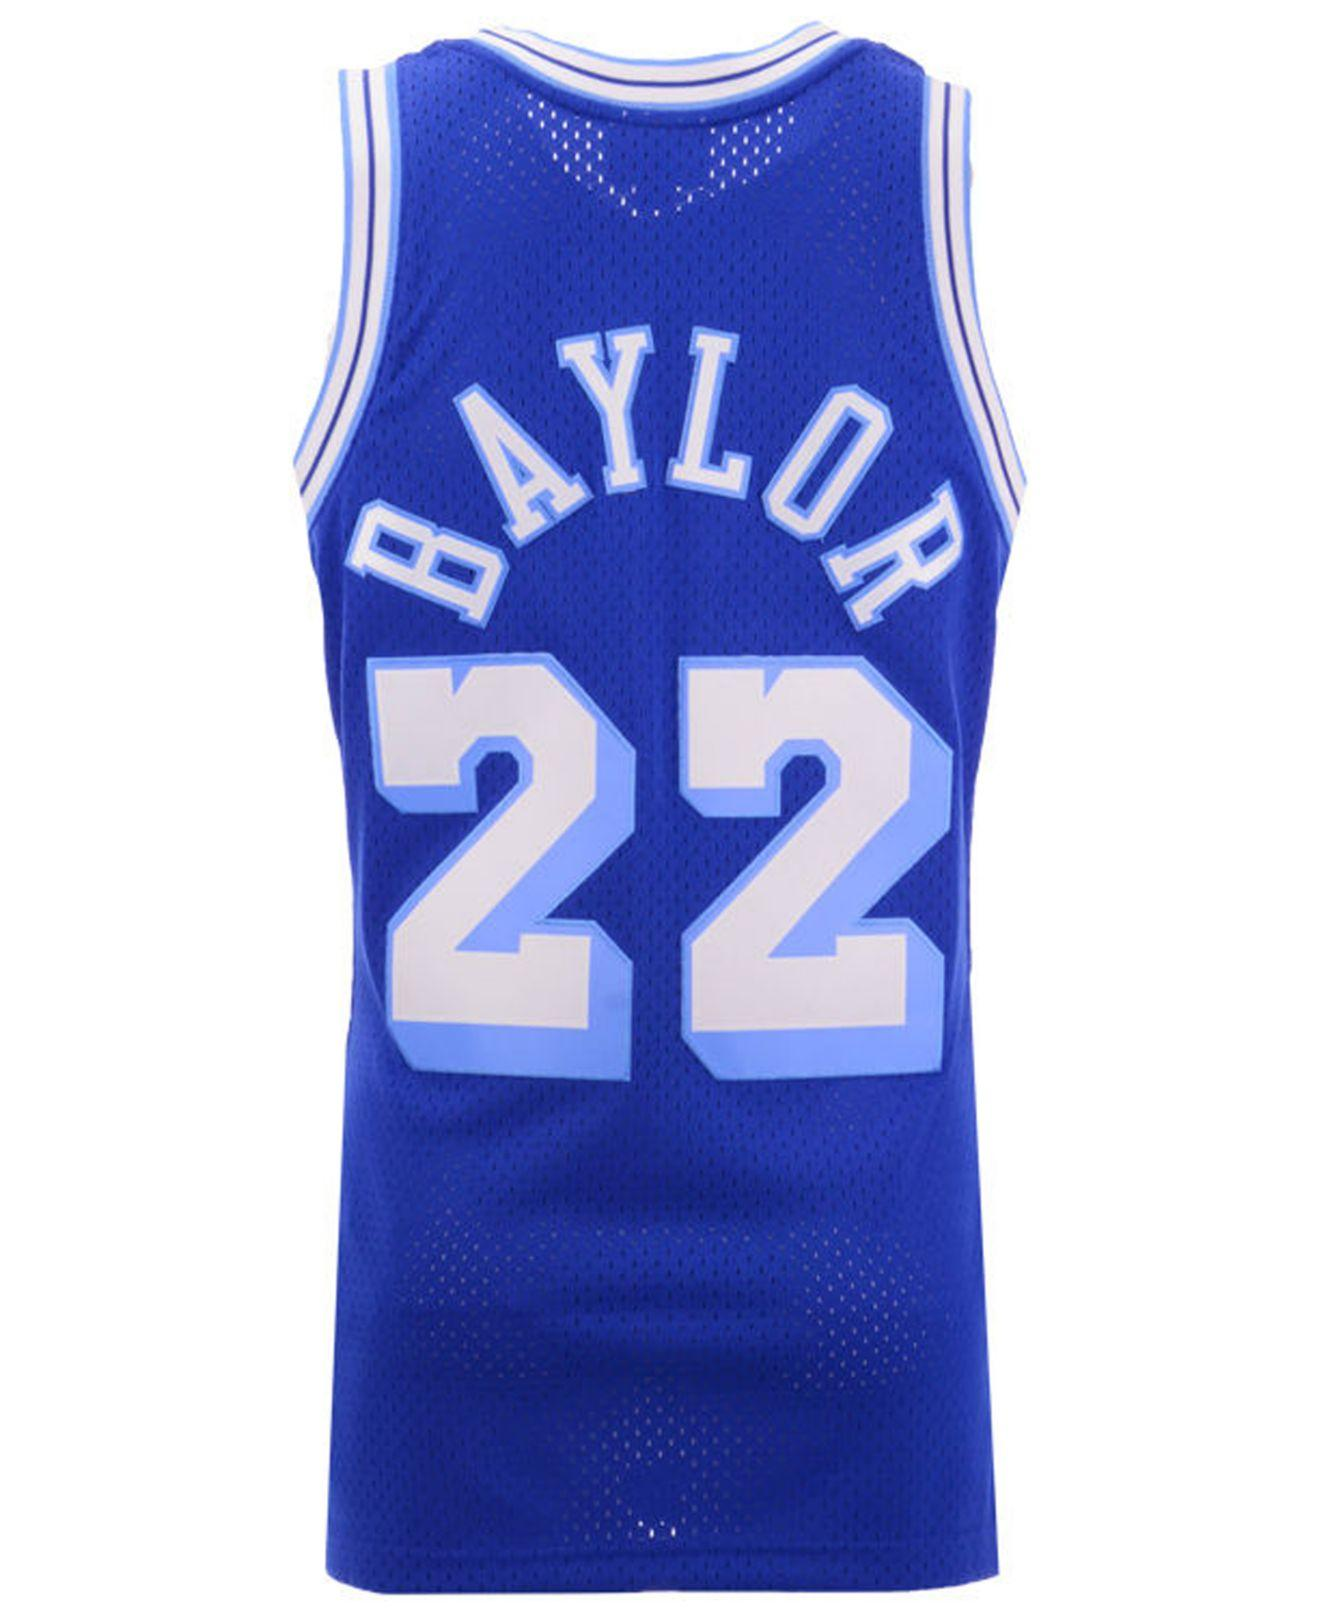 Lyst - Mitchell   Ness Elgin Baylor Los Angeles Lakers Hardwood Classic  Swingman Jersey in Blue for Men 09f14cae0